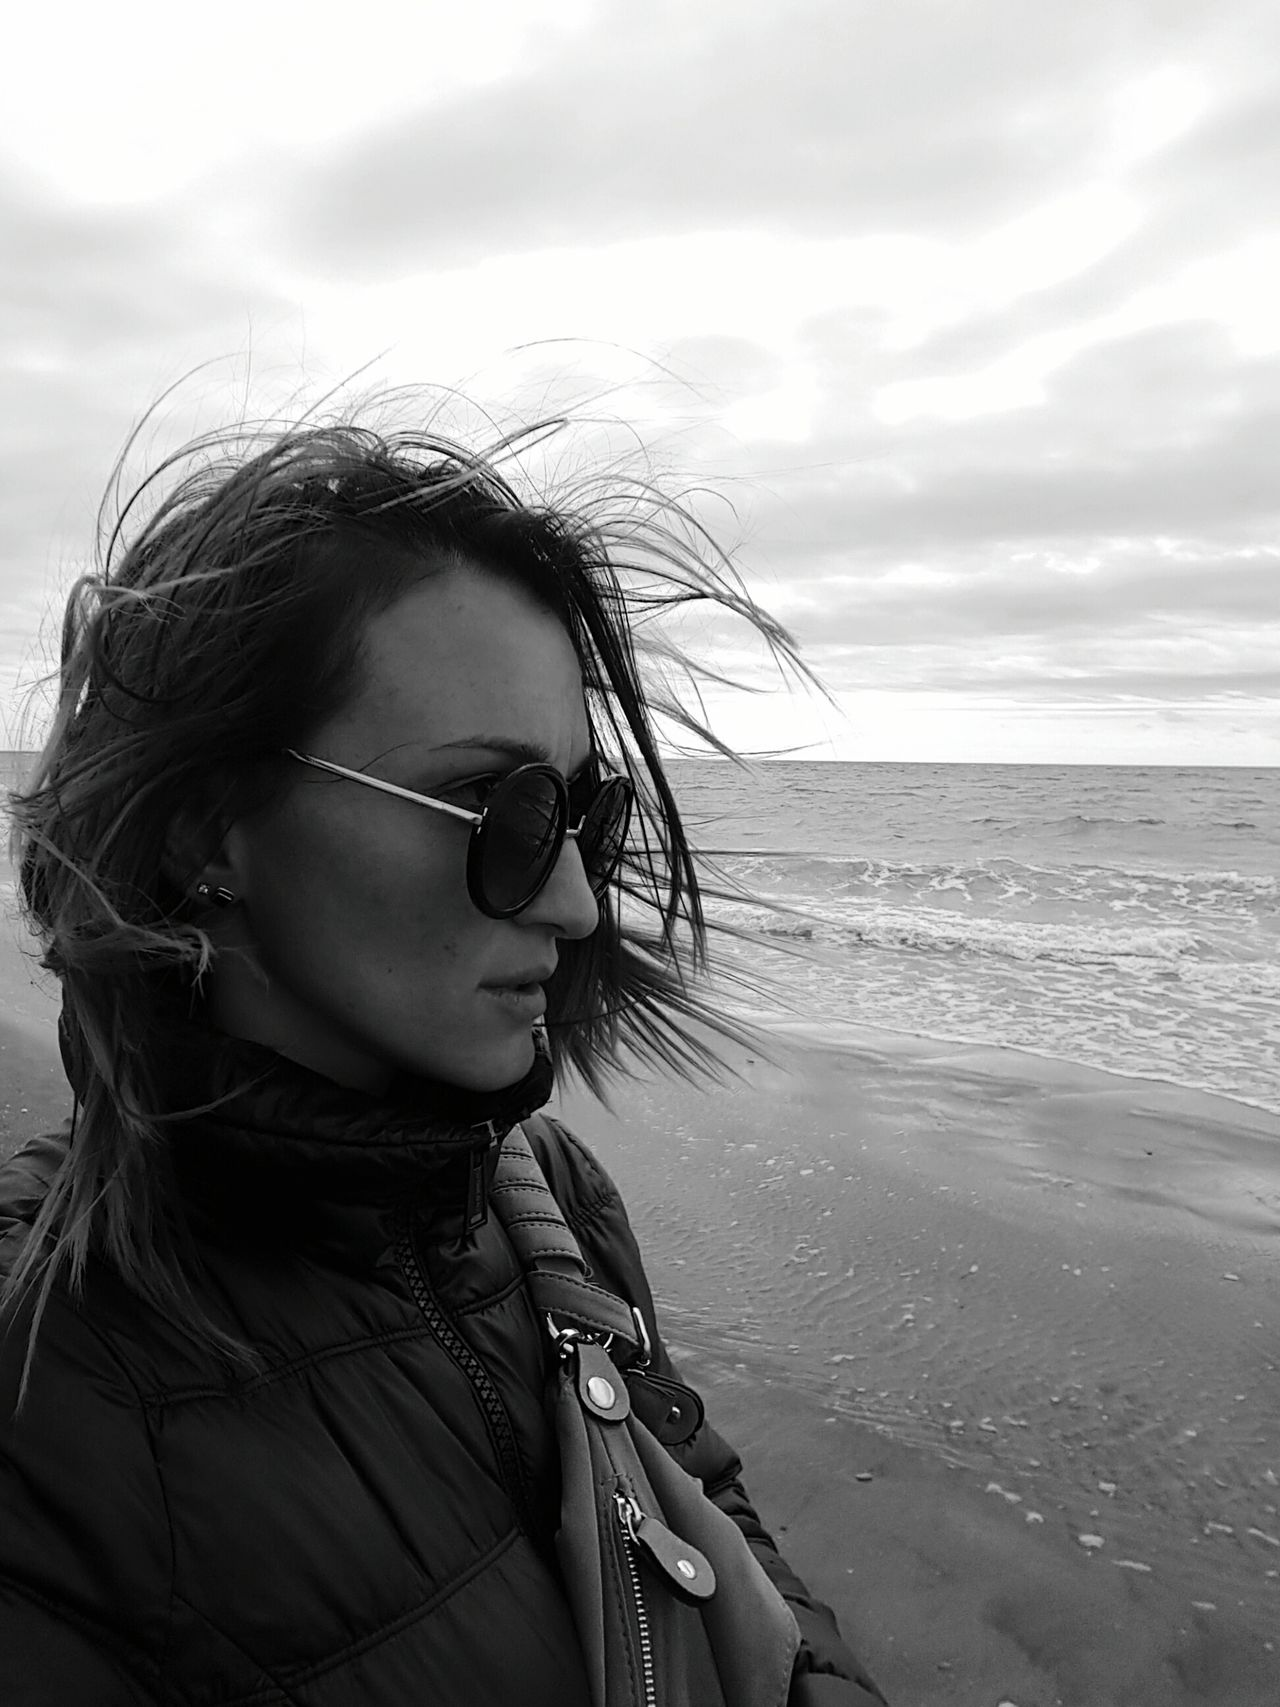 Beach Sea One Woman Only Sunglasses One Person Cloud - Sky Water Sky Horizon Over Water Women Sand People Adult Lifestyles Hair In The Wind Selfıe